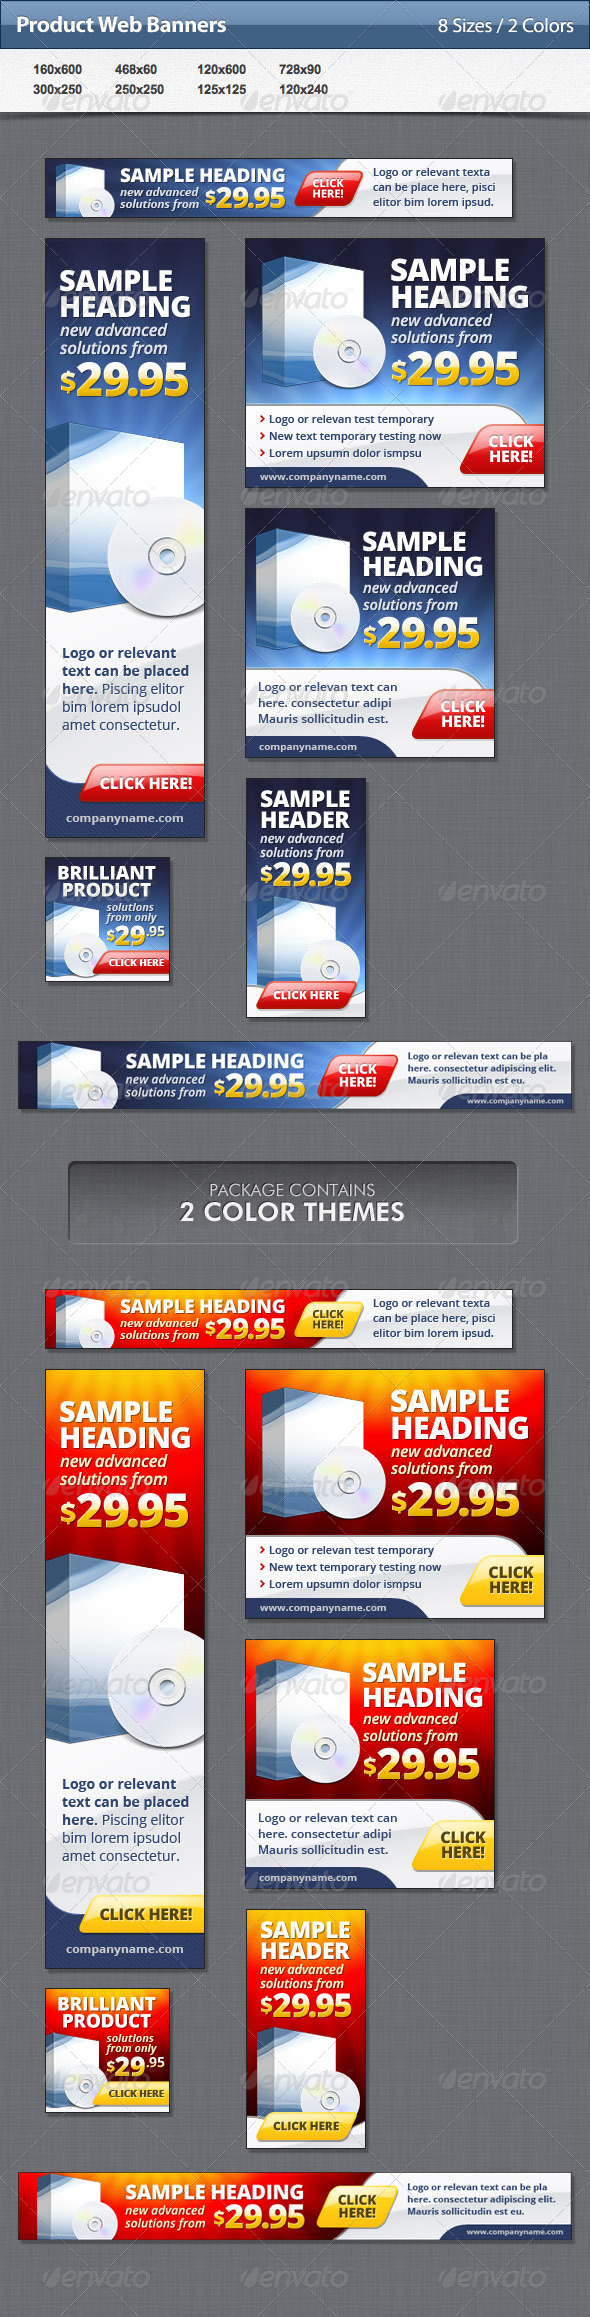 GraphicRiver Product Web Banners 4775199